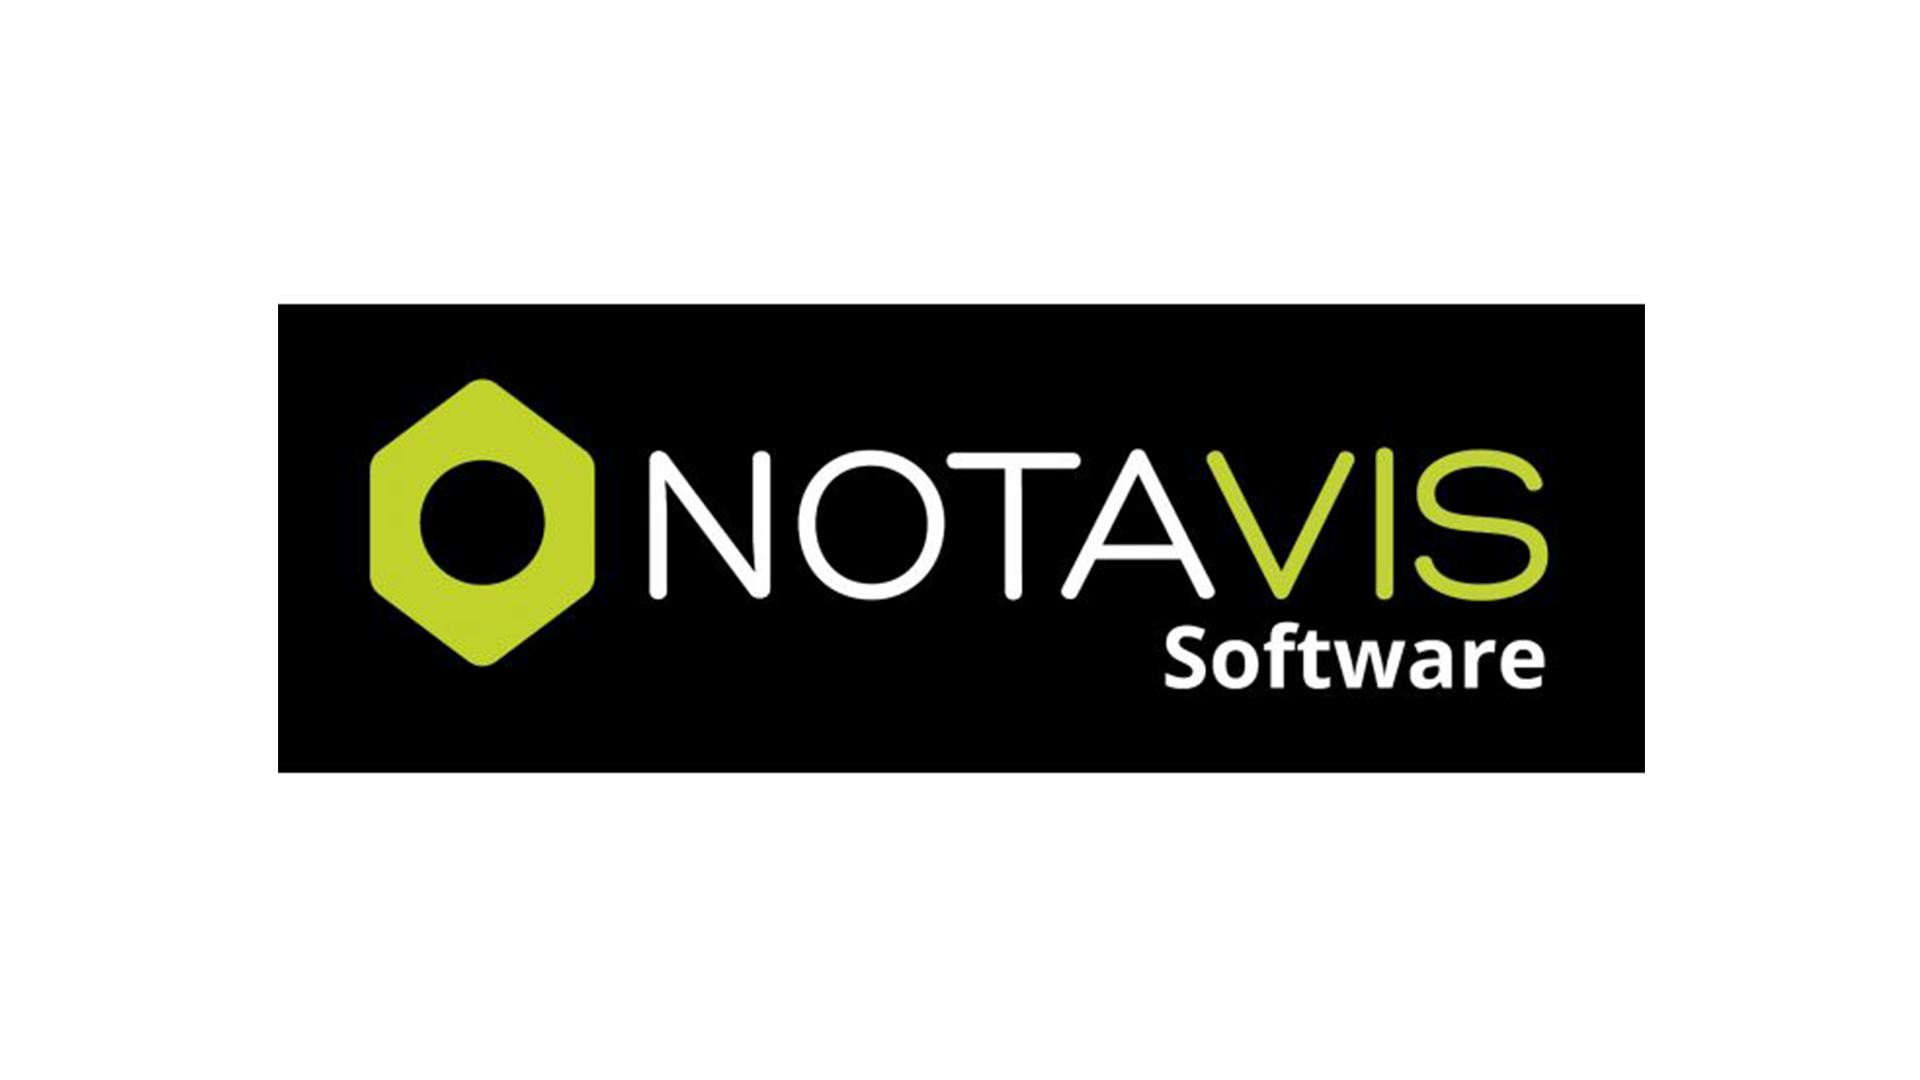 Product image notavis software